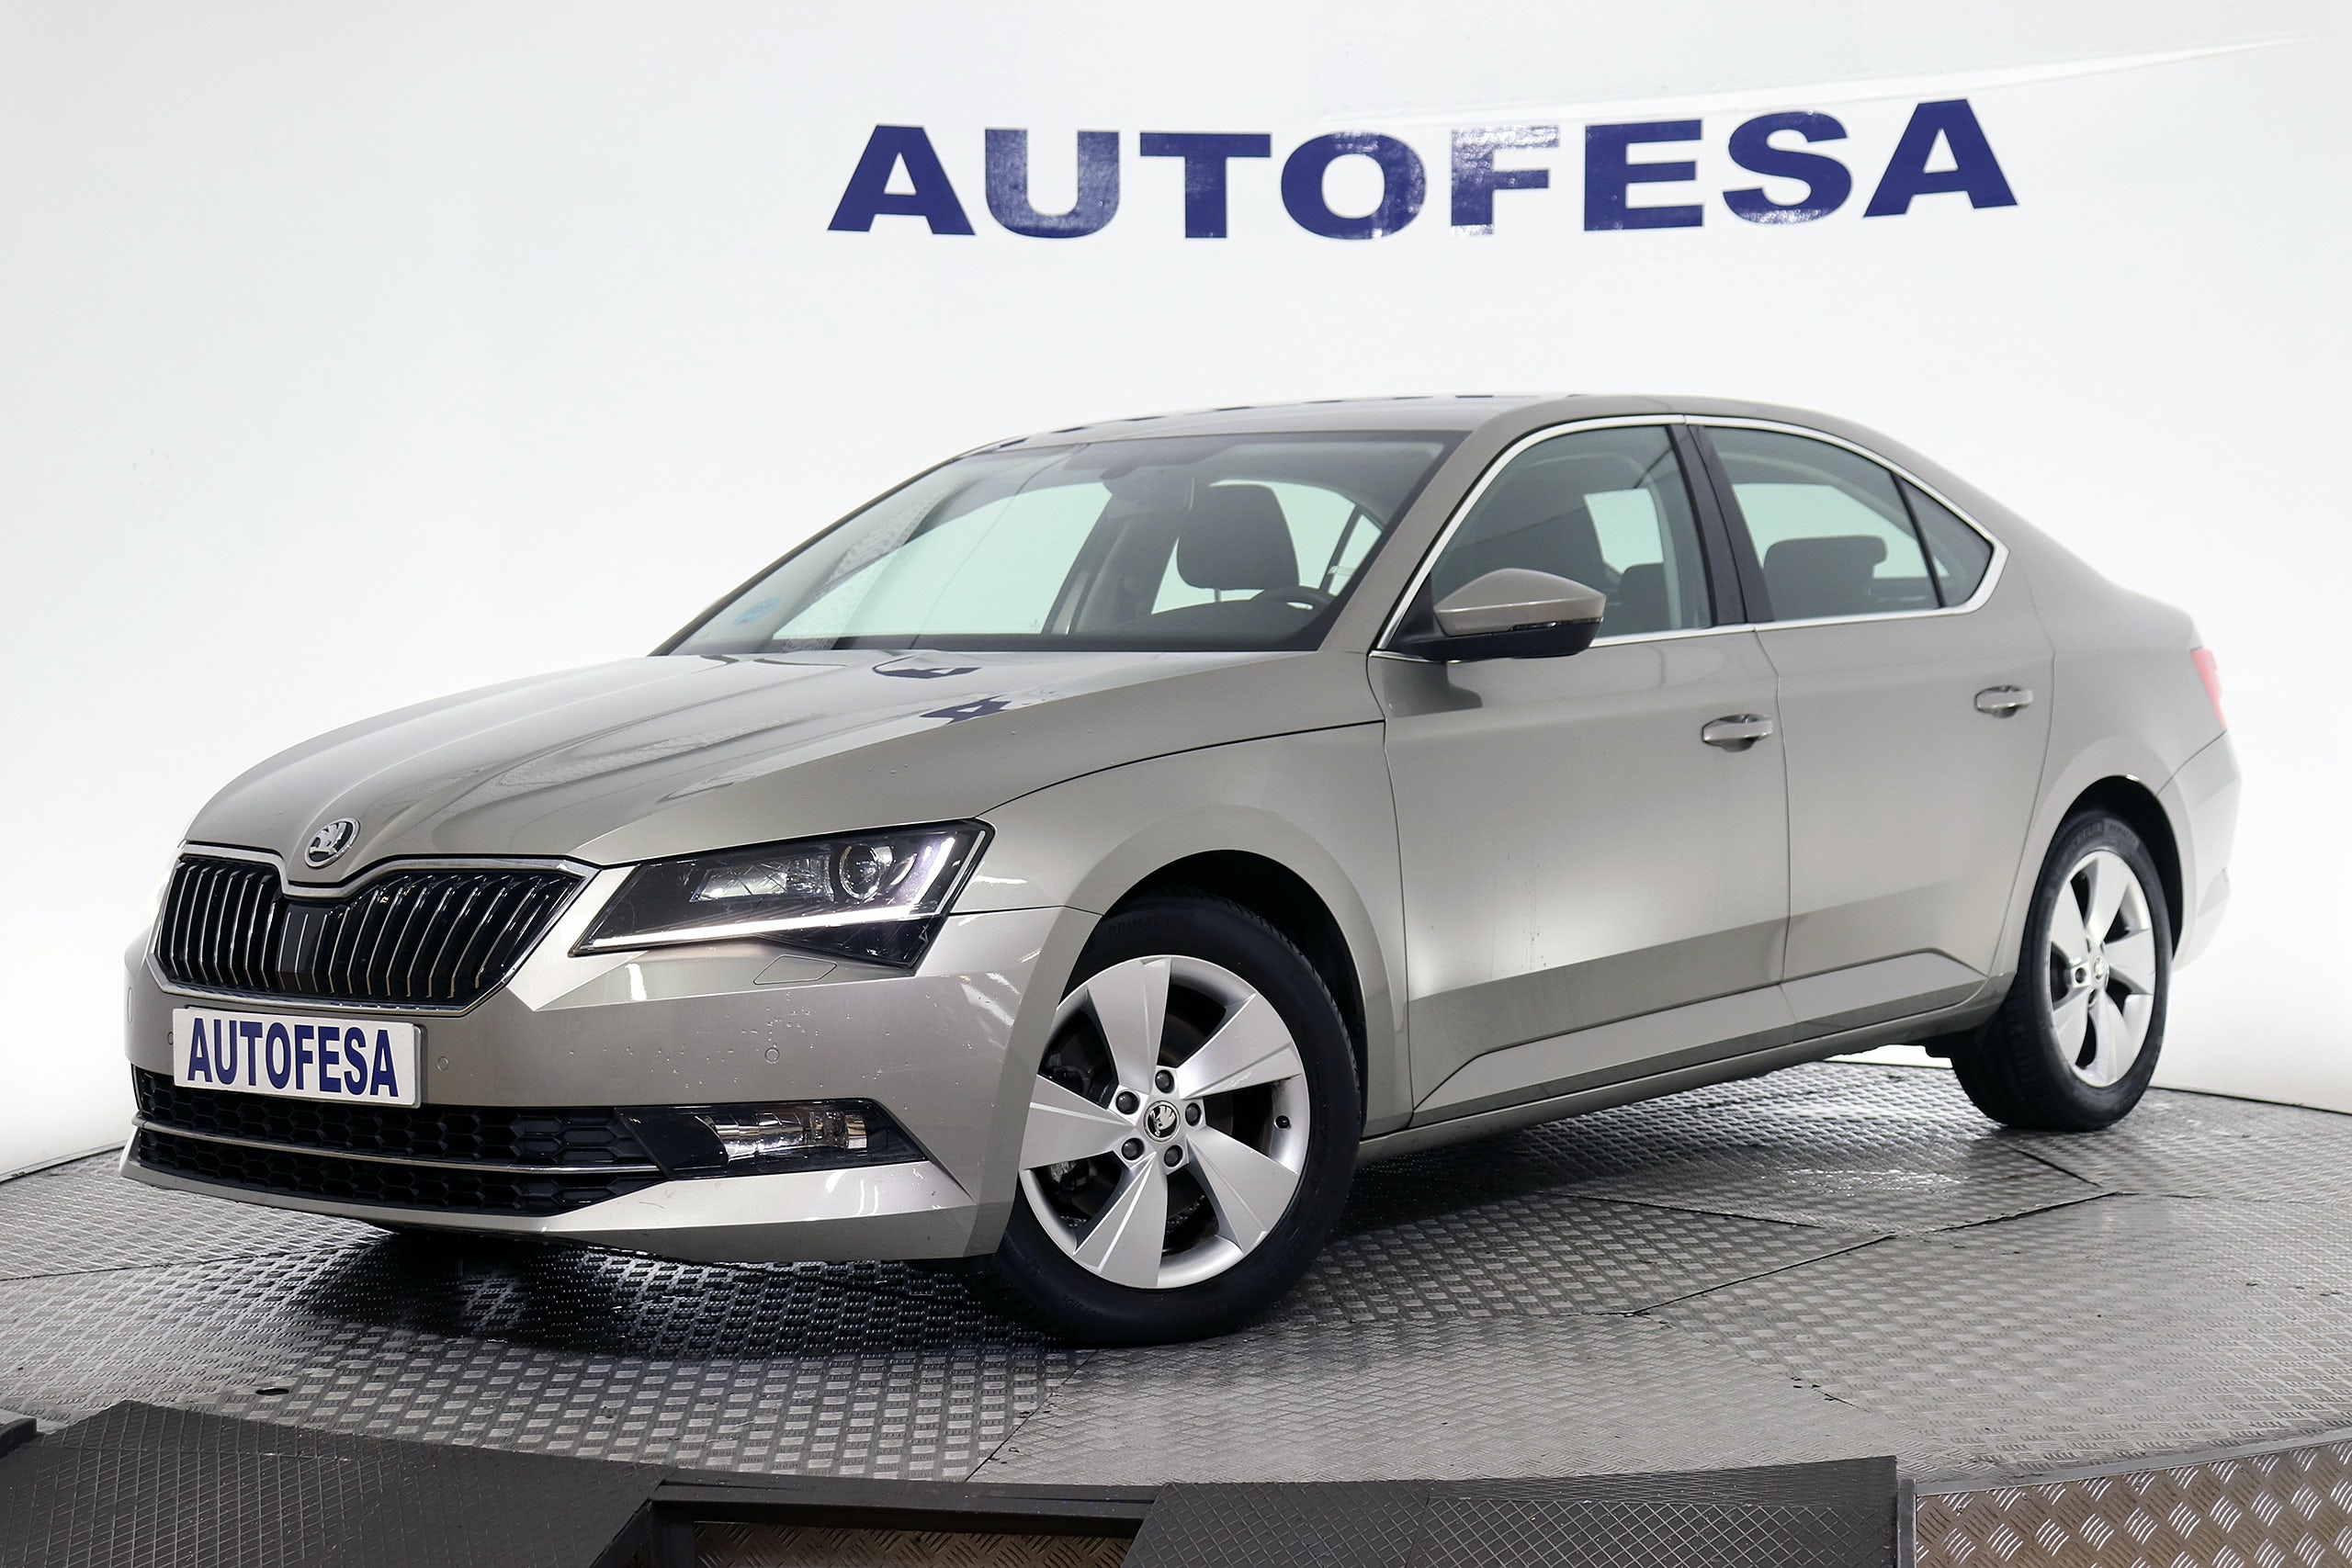 Fotos del Skoda Superb 1.6 TDI CR AMBITION DSG 123cv S/S Exterior 1